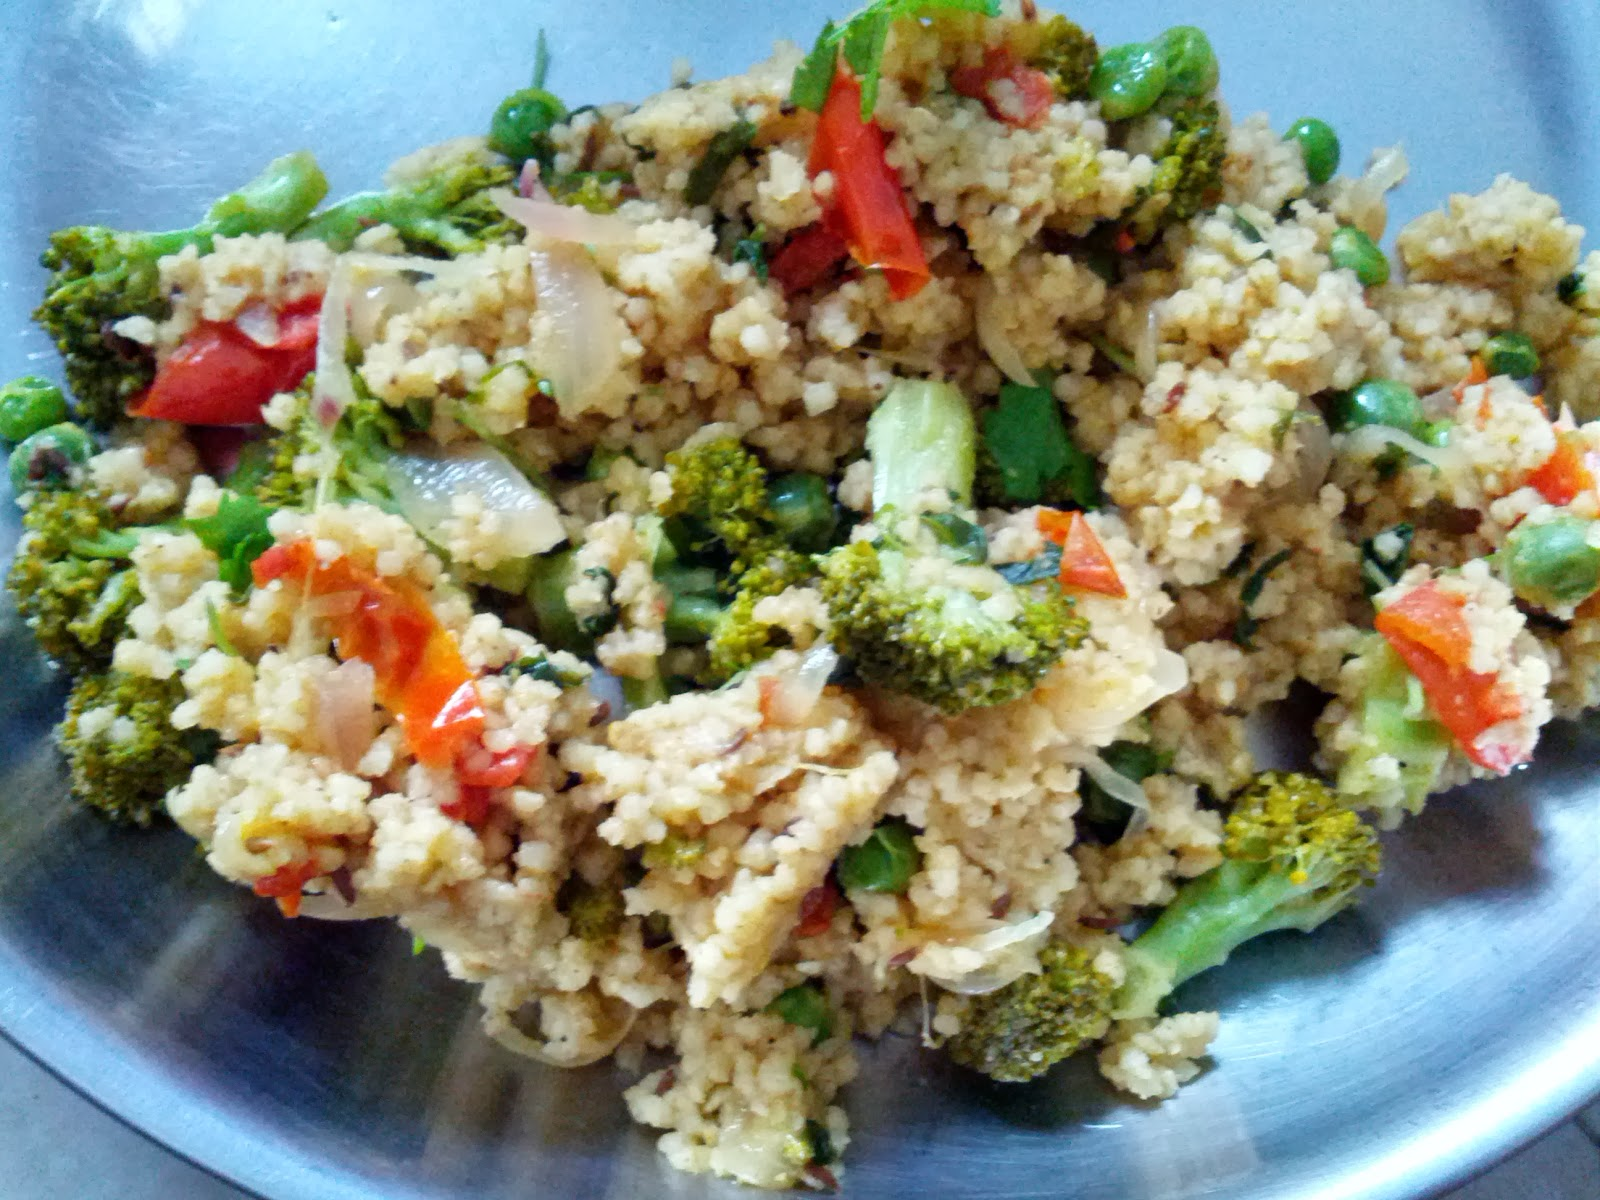 Foxtail millet Cauliflower & Broccoli rice